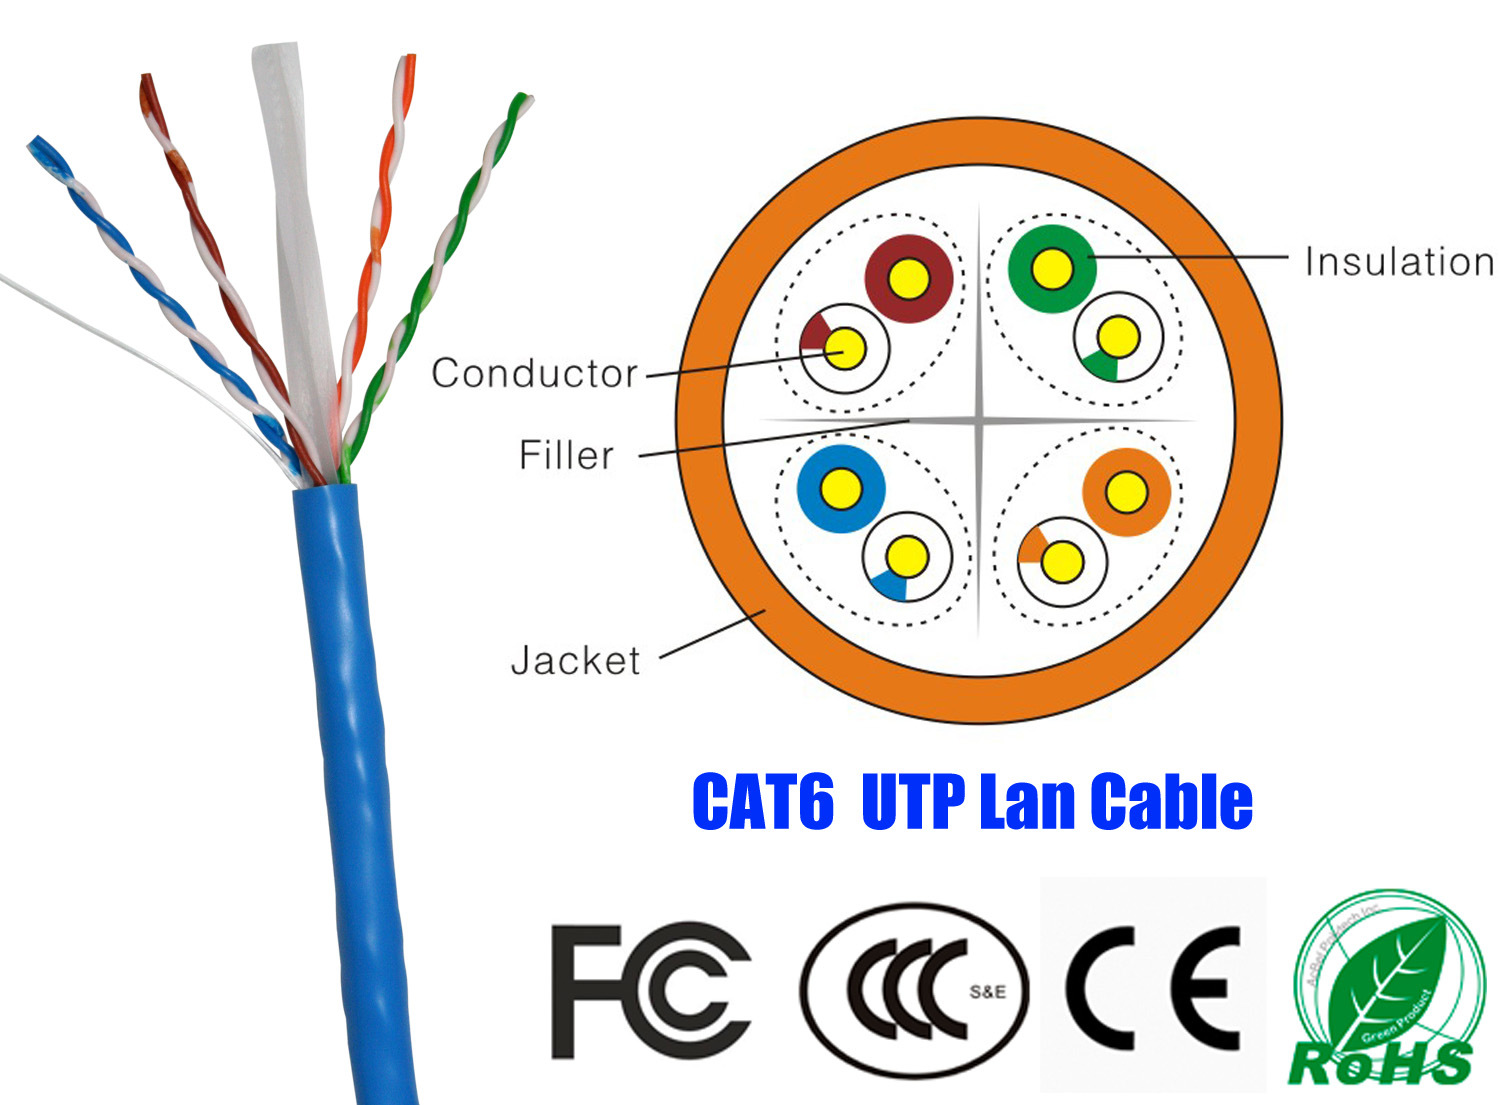 USB CABLE WIRING COLOR CODE - ELECTRIC MX TL on crossover cable pattern, crossover ethernet cable use, cat 5e crossover cable diagram, lan crossover cable diagram, crossover cable construction diagram, crossover cable cable, crossover cable wiring scheme, crossover cable setup, crossover cable wire, crossover cable color, crossover straight through cabling guide, crossover vs straight through ethernet cable, crossover ethernet cable wall plate, crossover cable assembly, crossover ethernet cable adapter, make crossover cable diagram, cat 5 crossover cable diagram, rj crossover cable diagram, cross connect cable diagram, cat 6 crossover cable diagram,